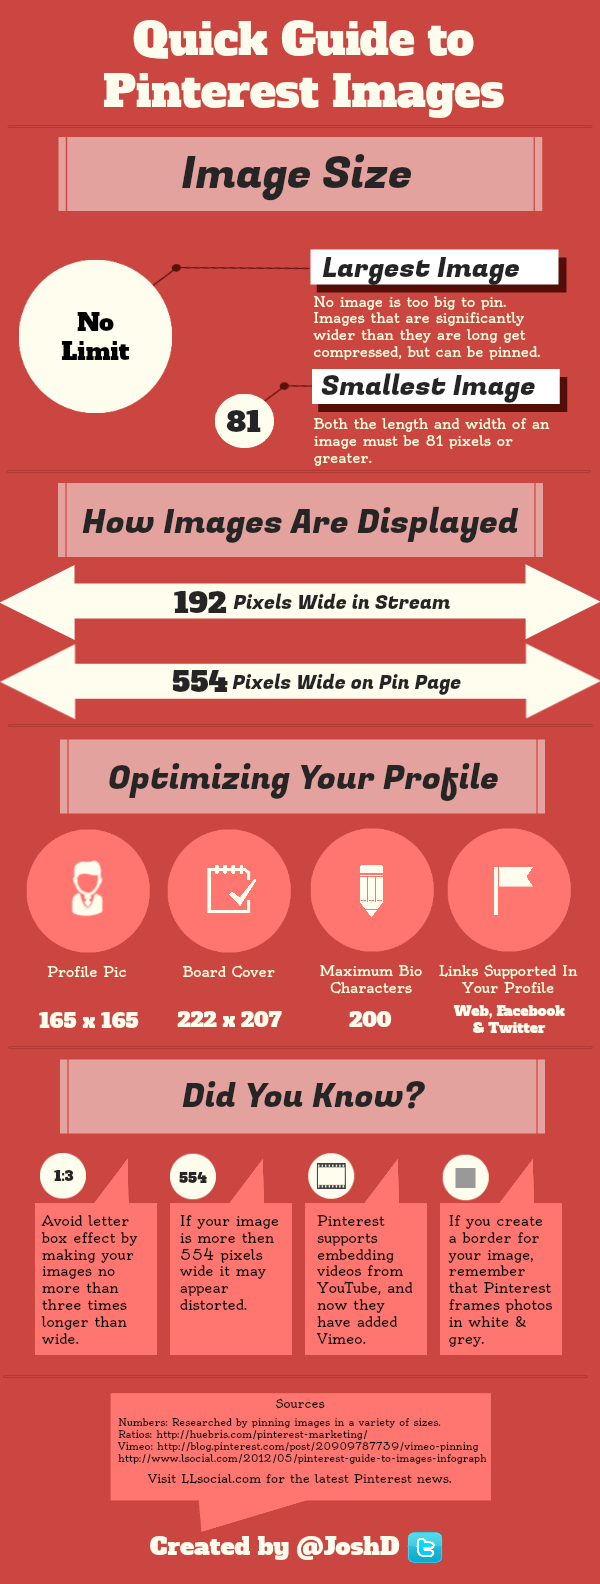 Pinterest Image Guide for Users [Infographic]